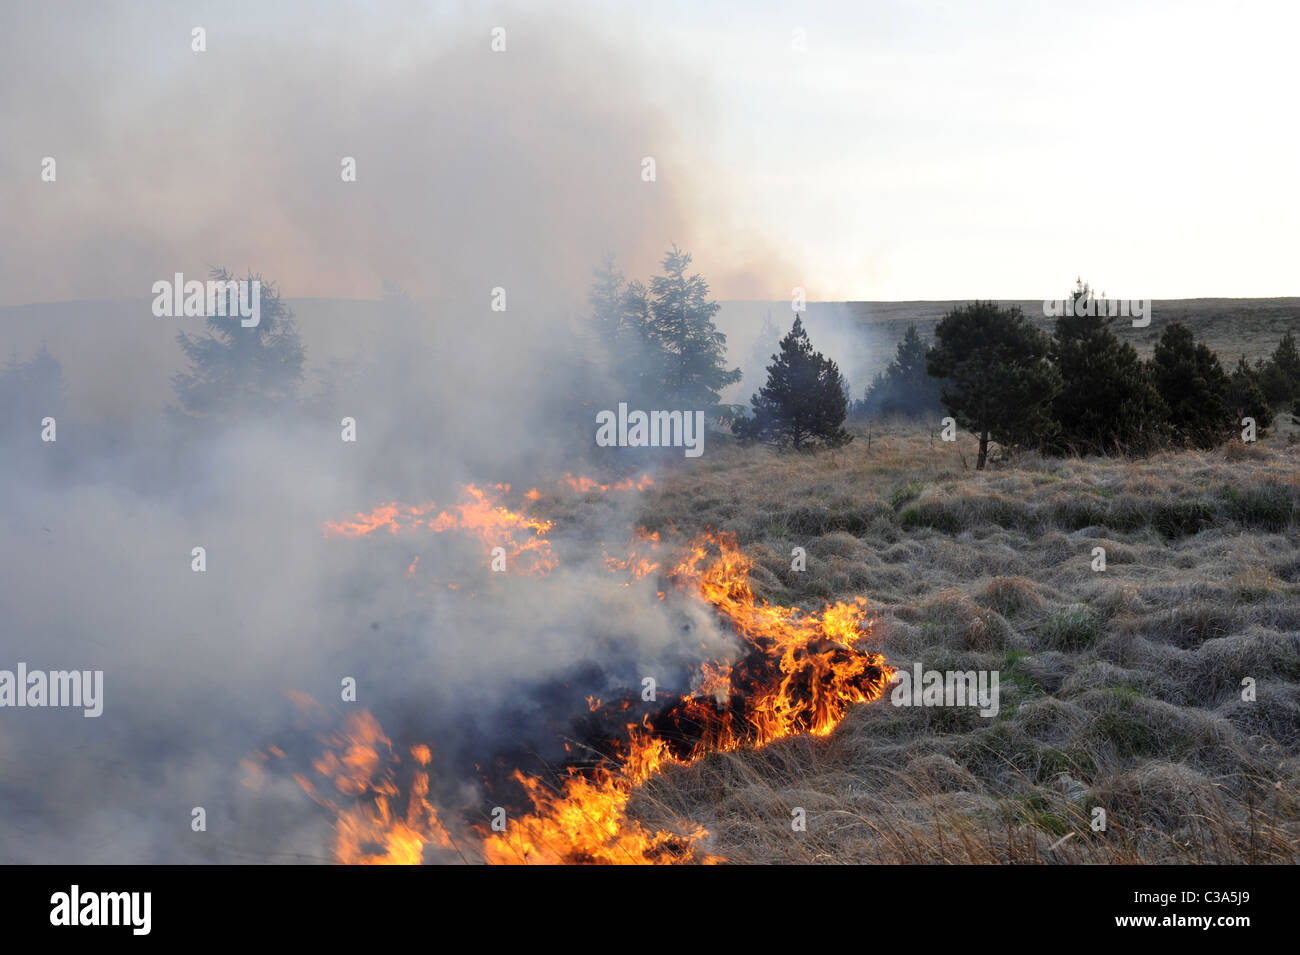 Grass fire over the moors and spreading into the trees dry windy weather assisting the spread of fire. - Stock Image